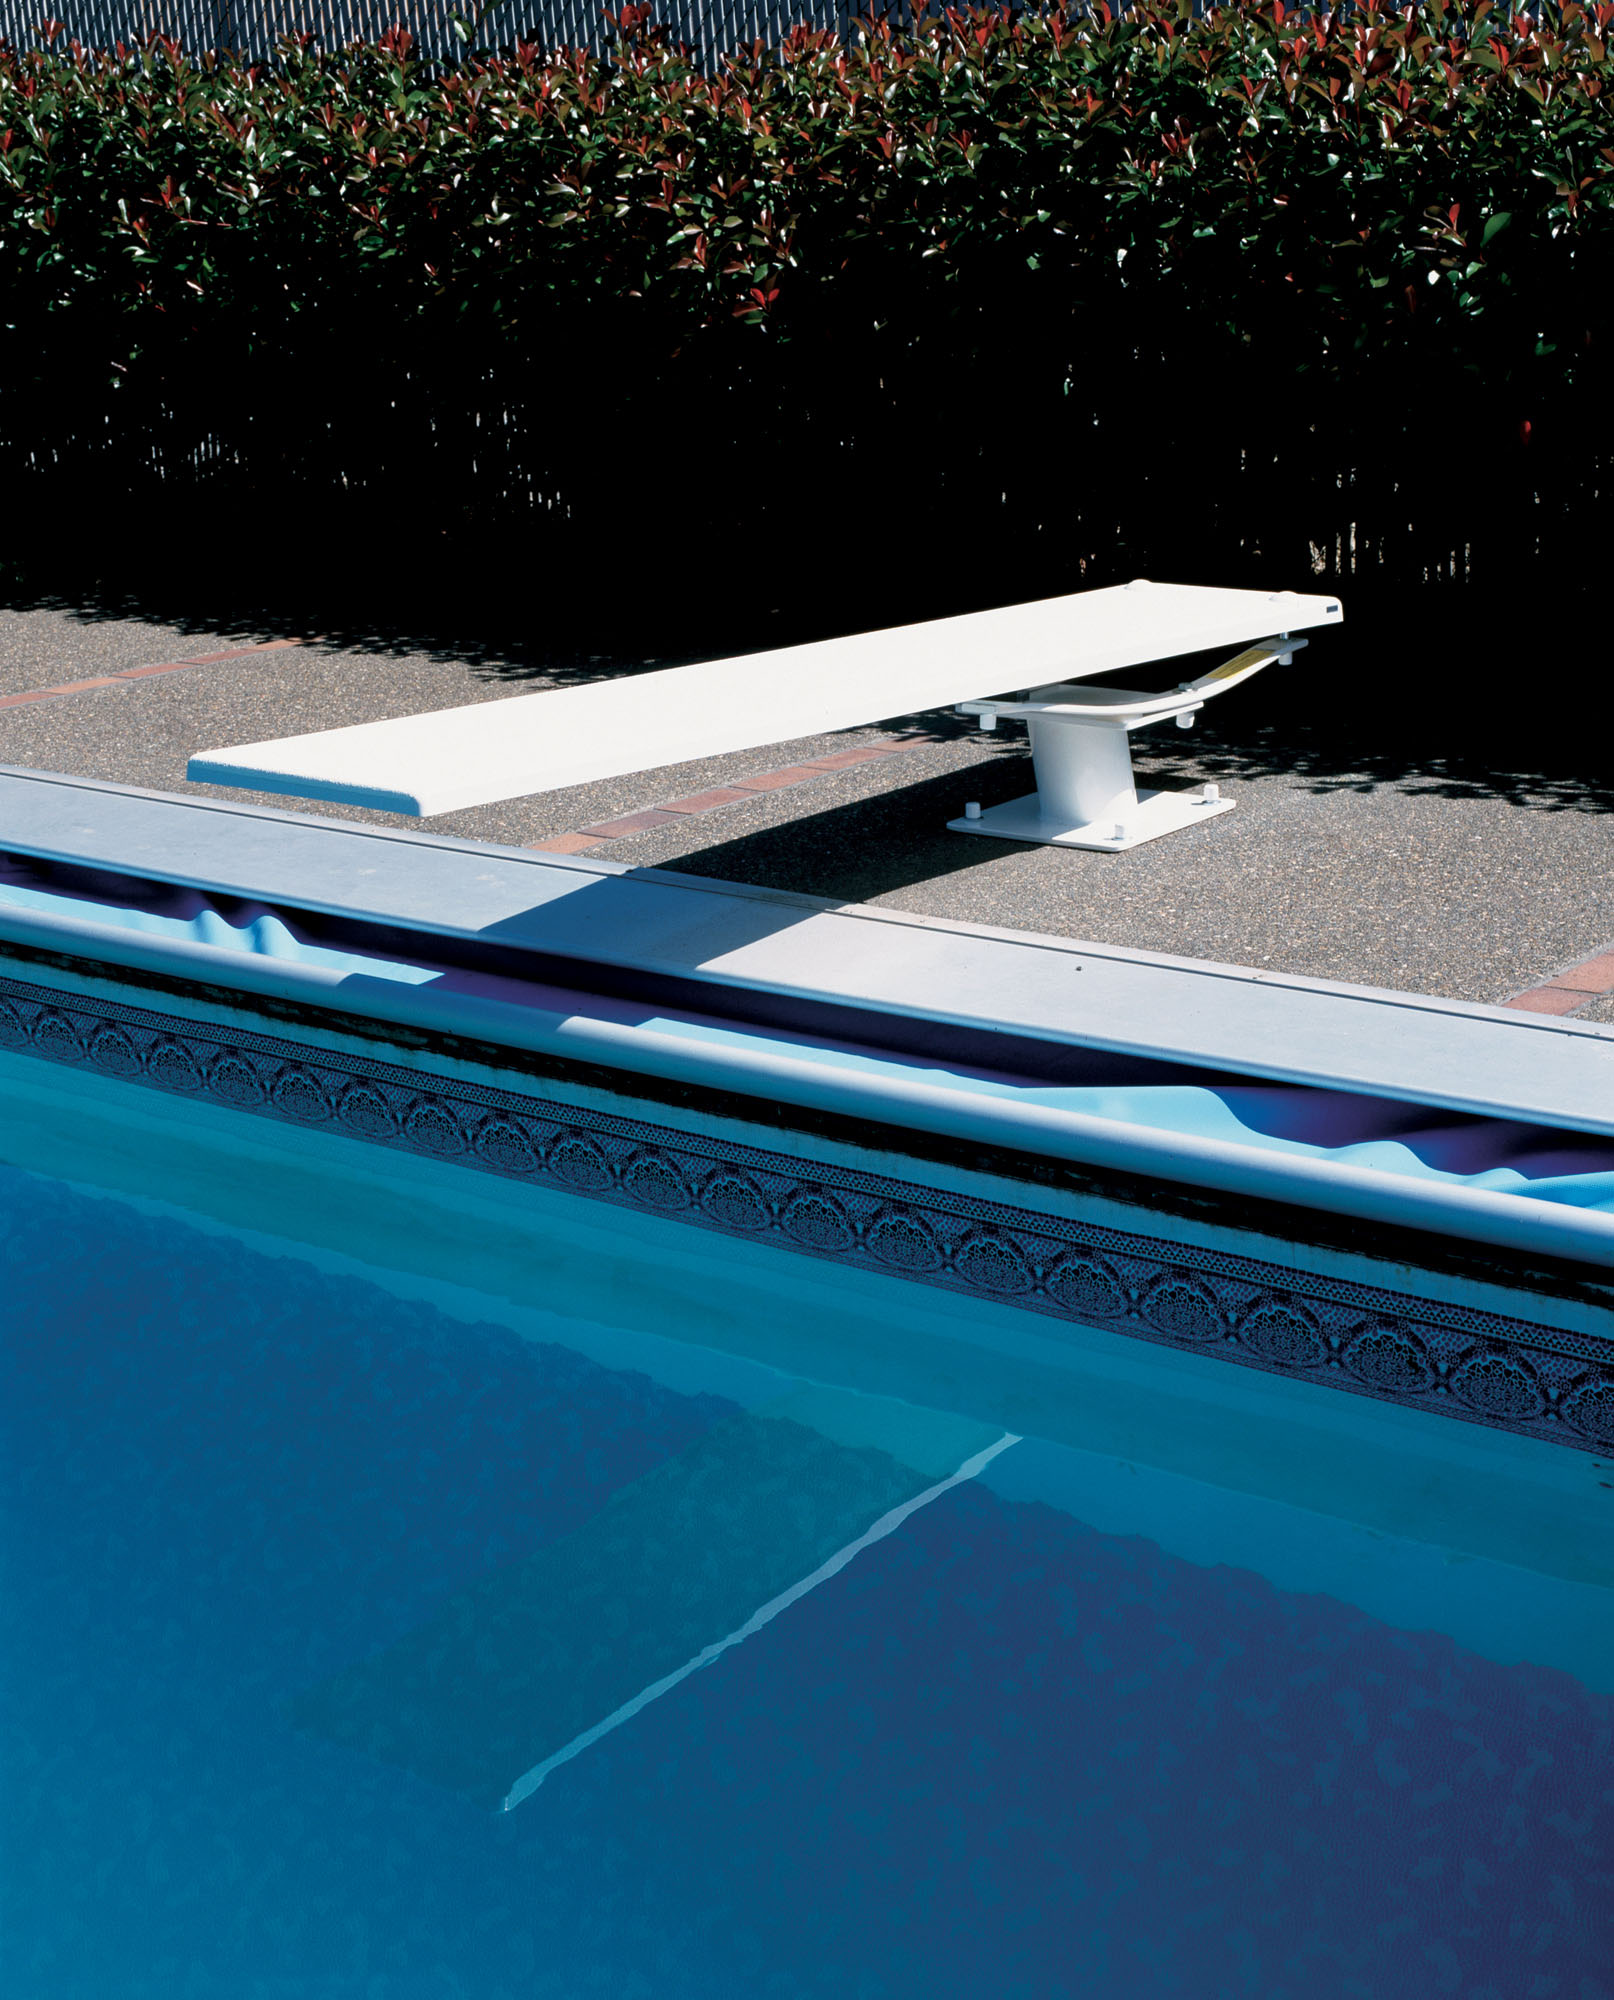 Cantilever diving boards swimming pool discounters - Swimming pool discounters ...